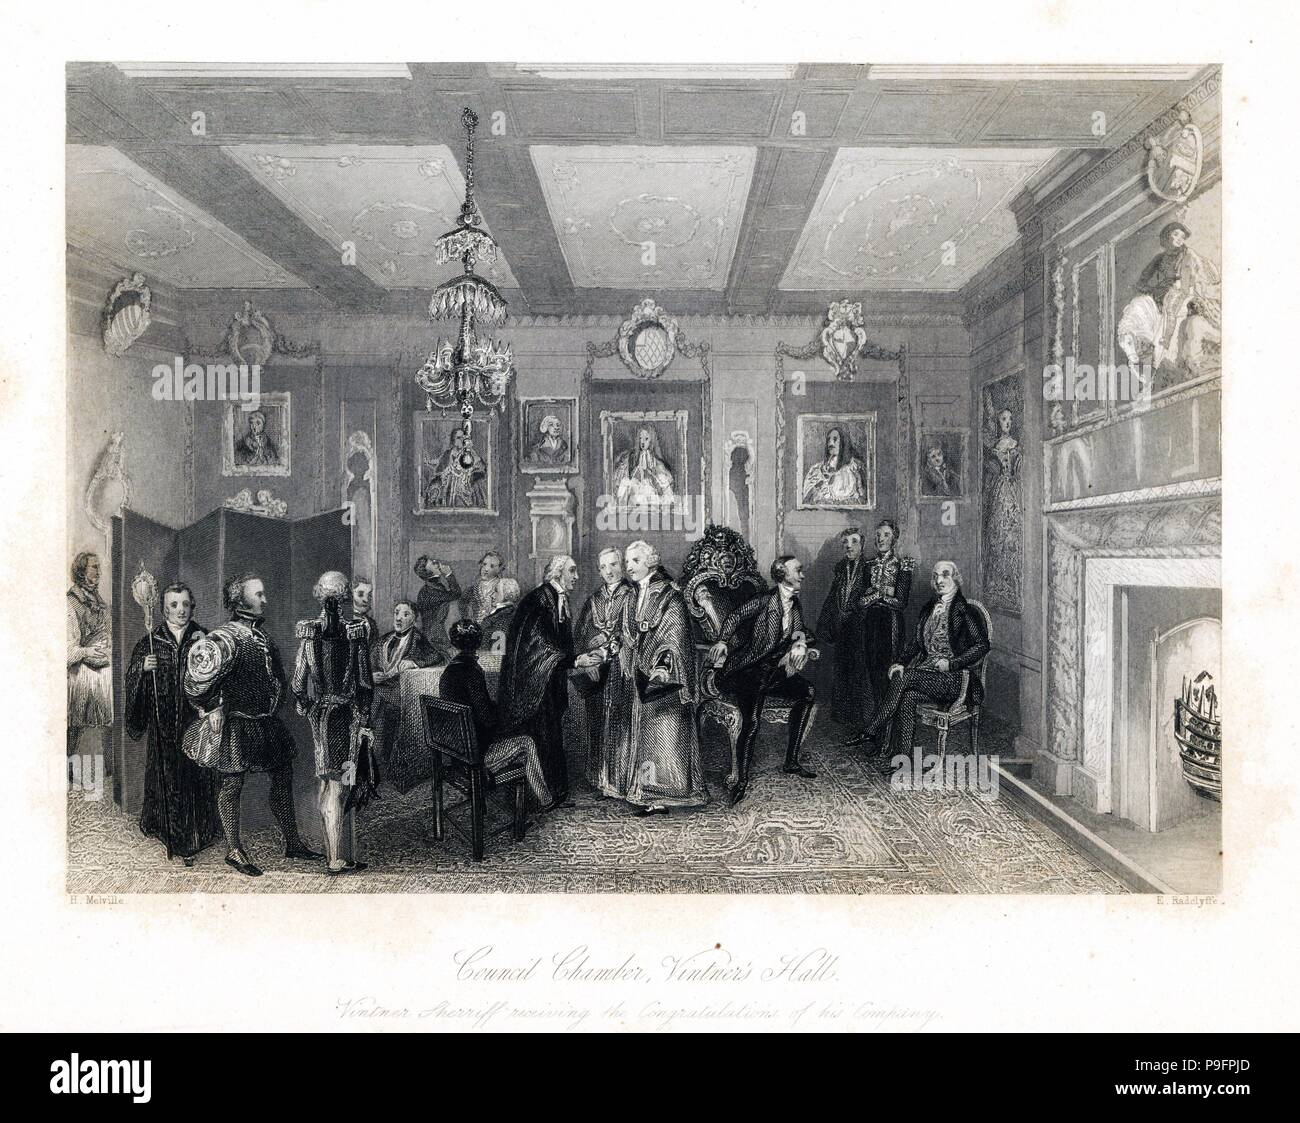 Vintner Sherriff and liverymen in the Council Chamber, Vintner's Hall. Liverymen of various ranks in fur-lined gowns. Steel engraving by E. Radclyffe after an illustration by Henry Melville from London Interiors, Their Costumes and Ceremonies, Joshua Mead, London, 1841. - Stock Image